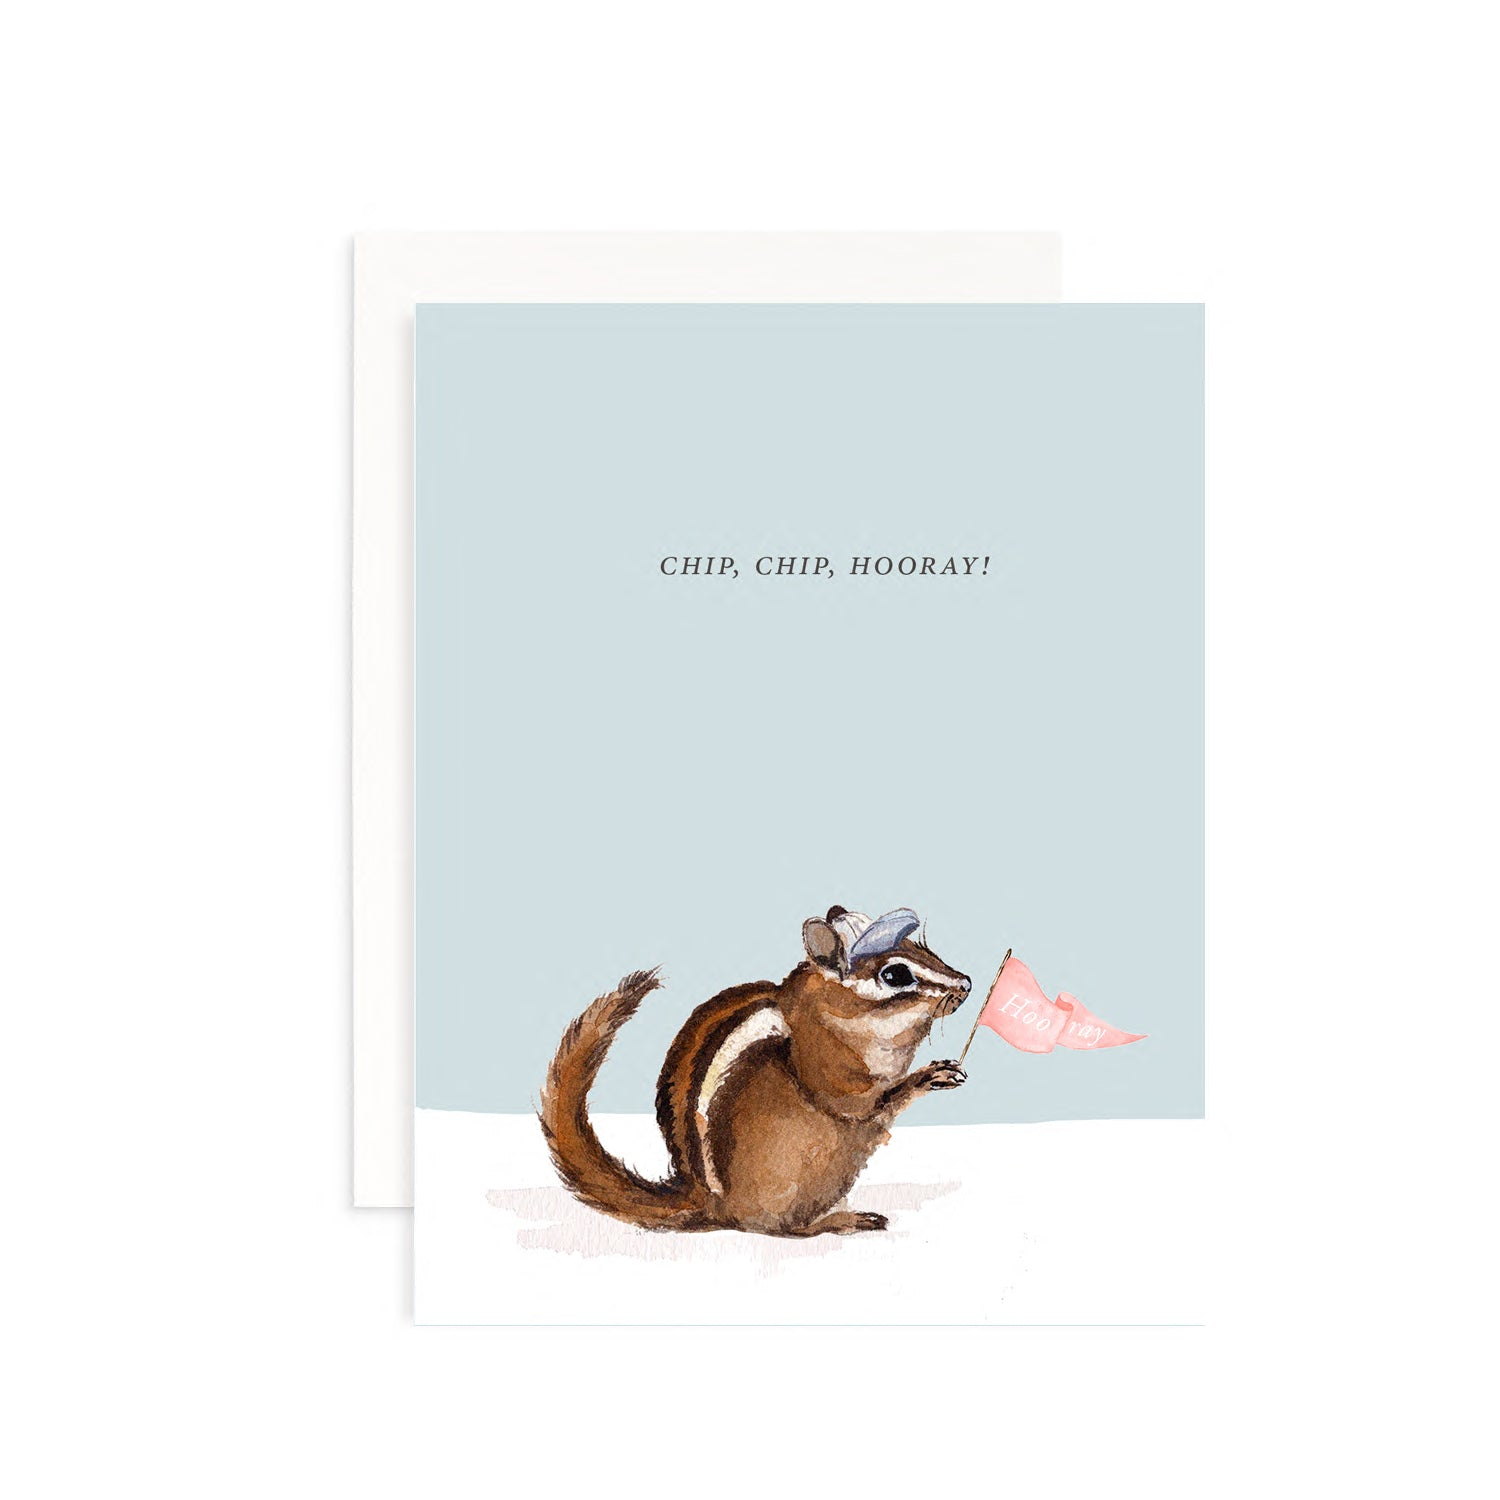 Chip, Chip, Hooray Greeting Card